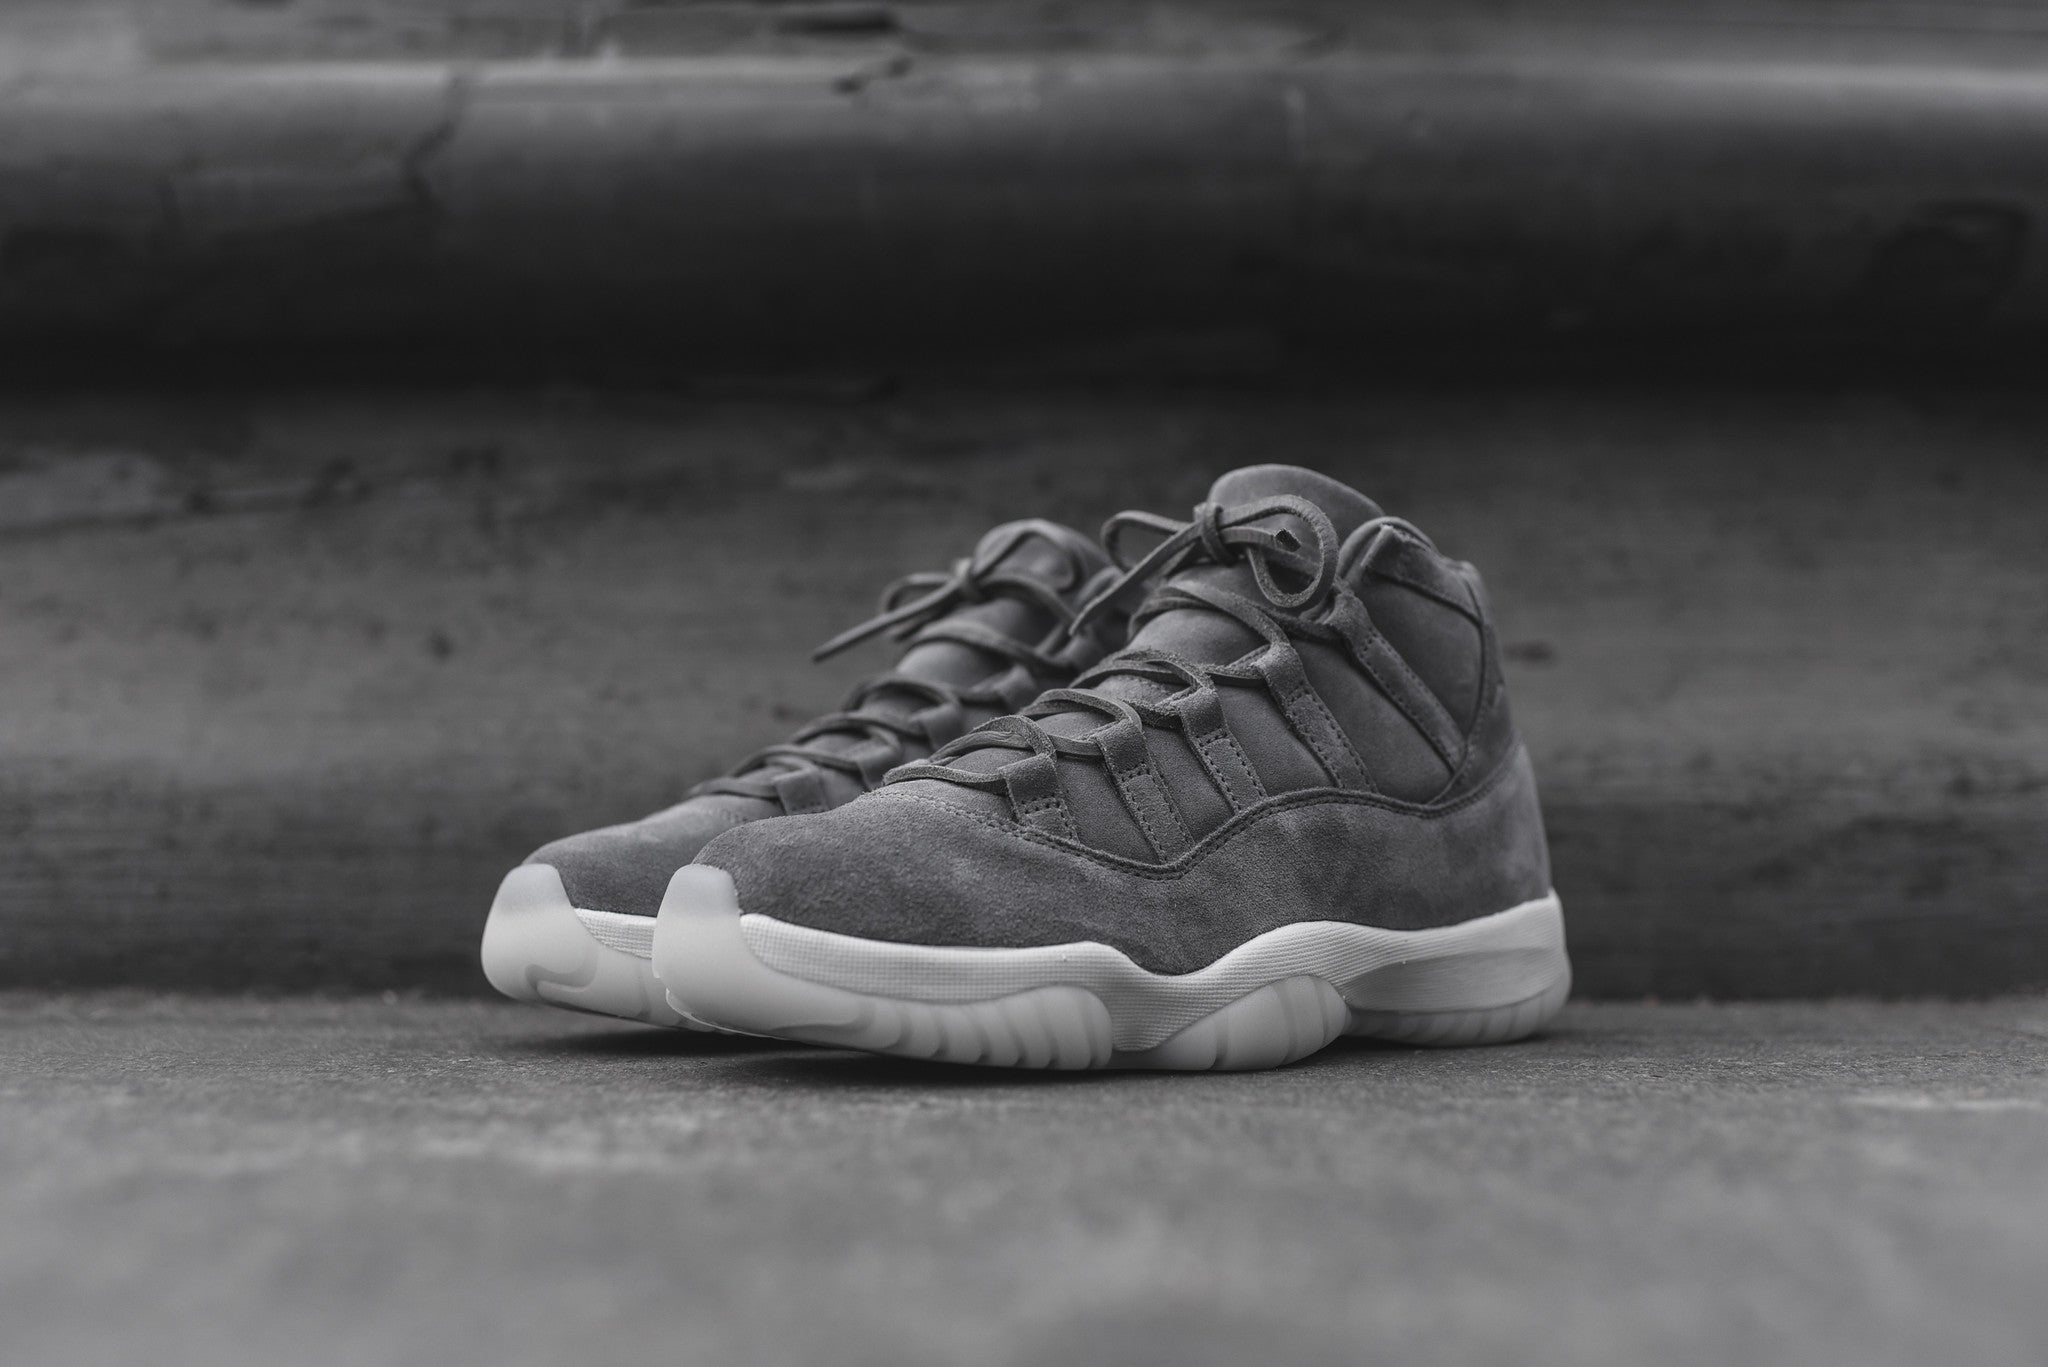 Nike Air Jordan 11 Retro PRM - Cool Grey / Sail